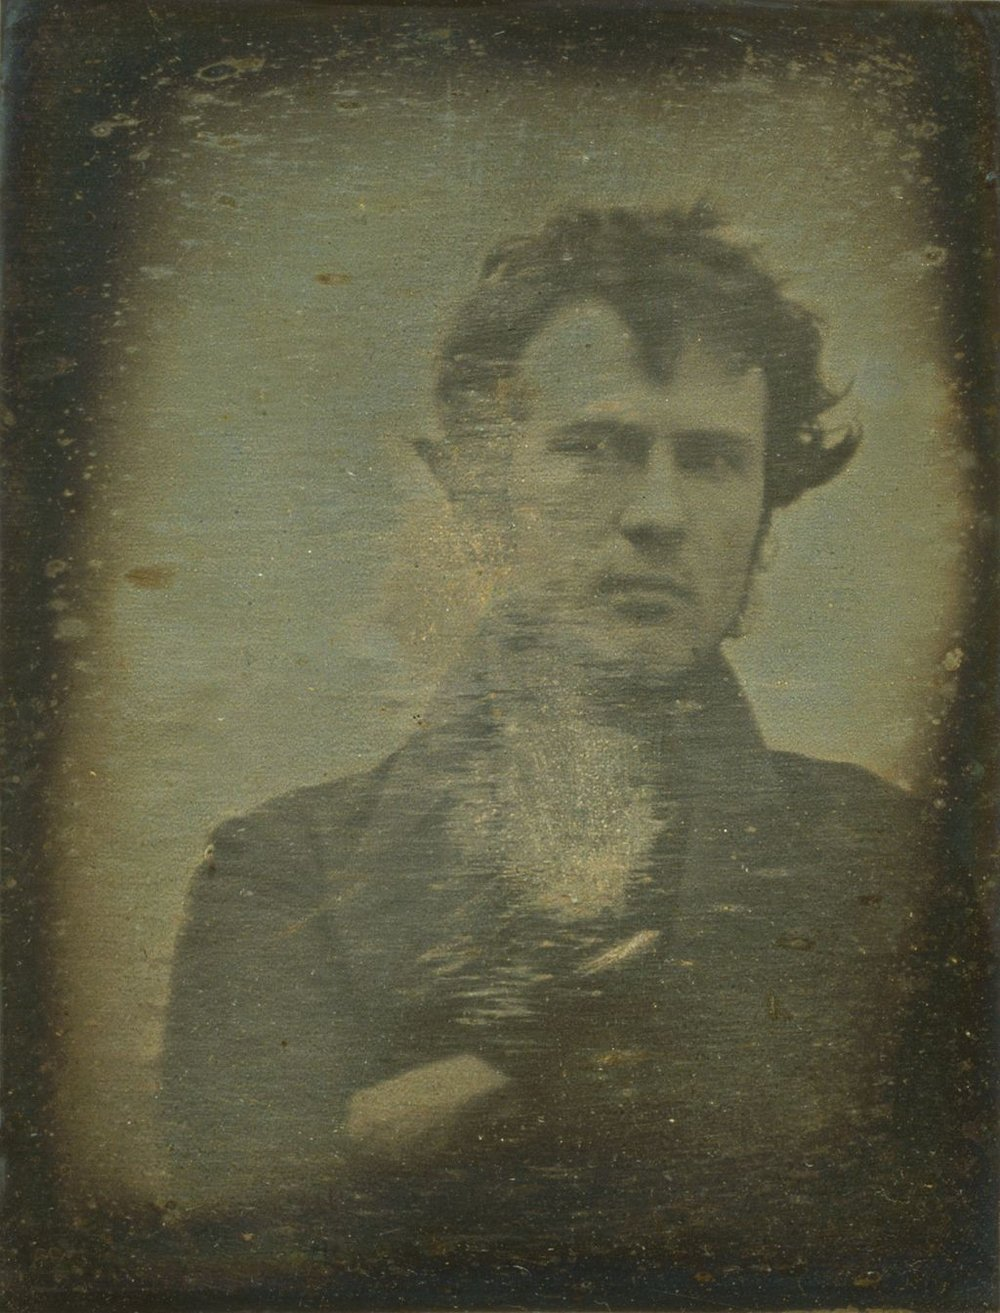 The first photographic portrait image of a human ever produced, self-portrait by Robert Cornelius, 1839. Photo courtesy of Library of Congress Prints and Photographs Division